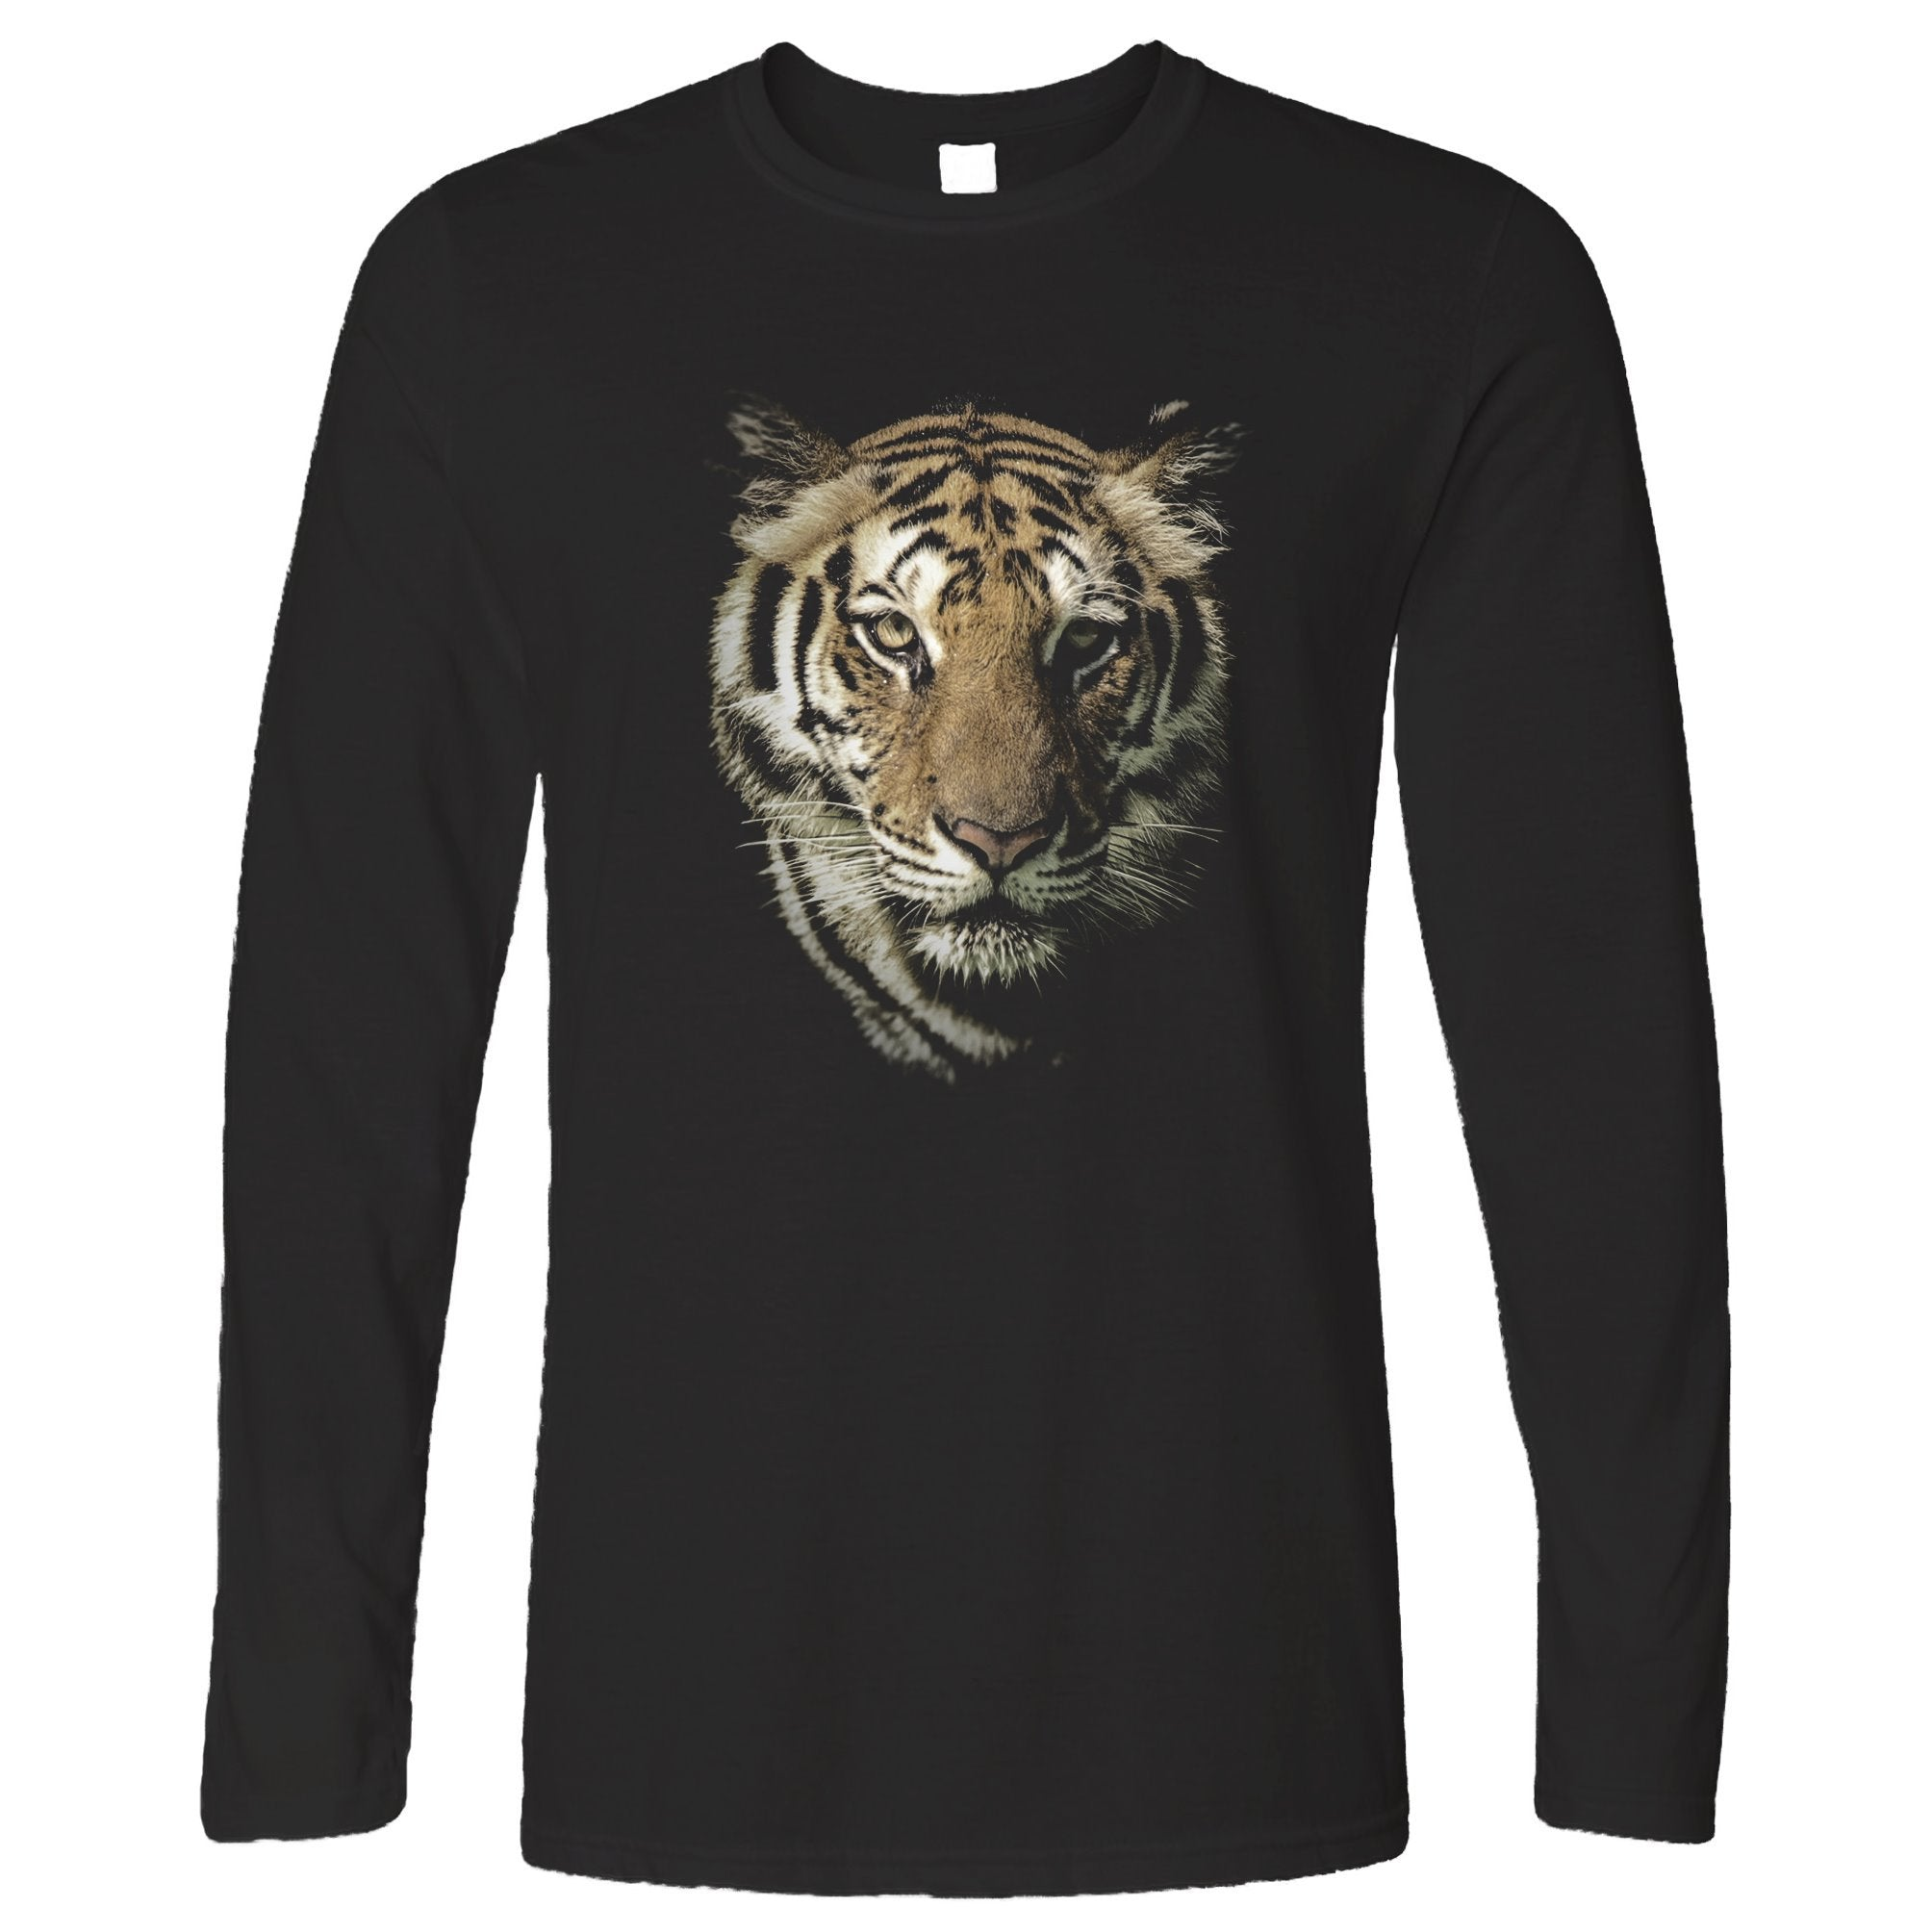 Tiger Face Long Sleeve Majestic Big Cat Head T-Shirt